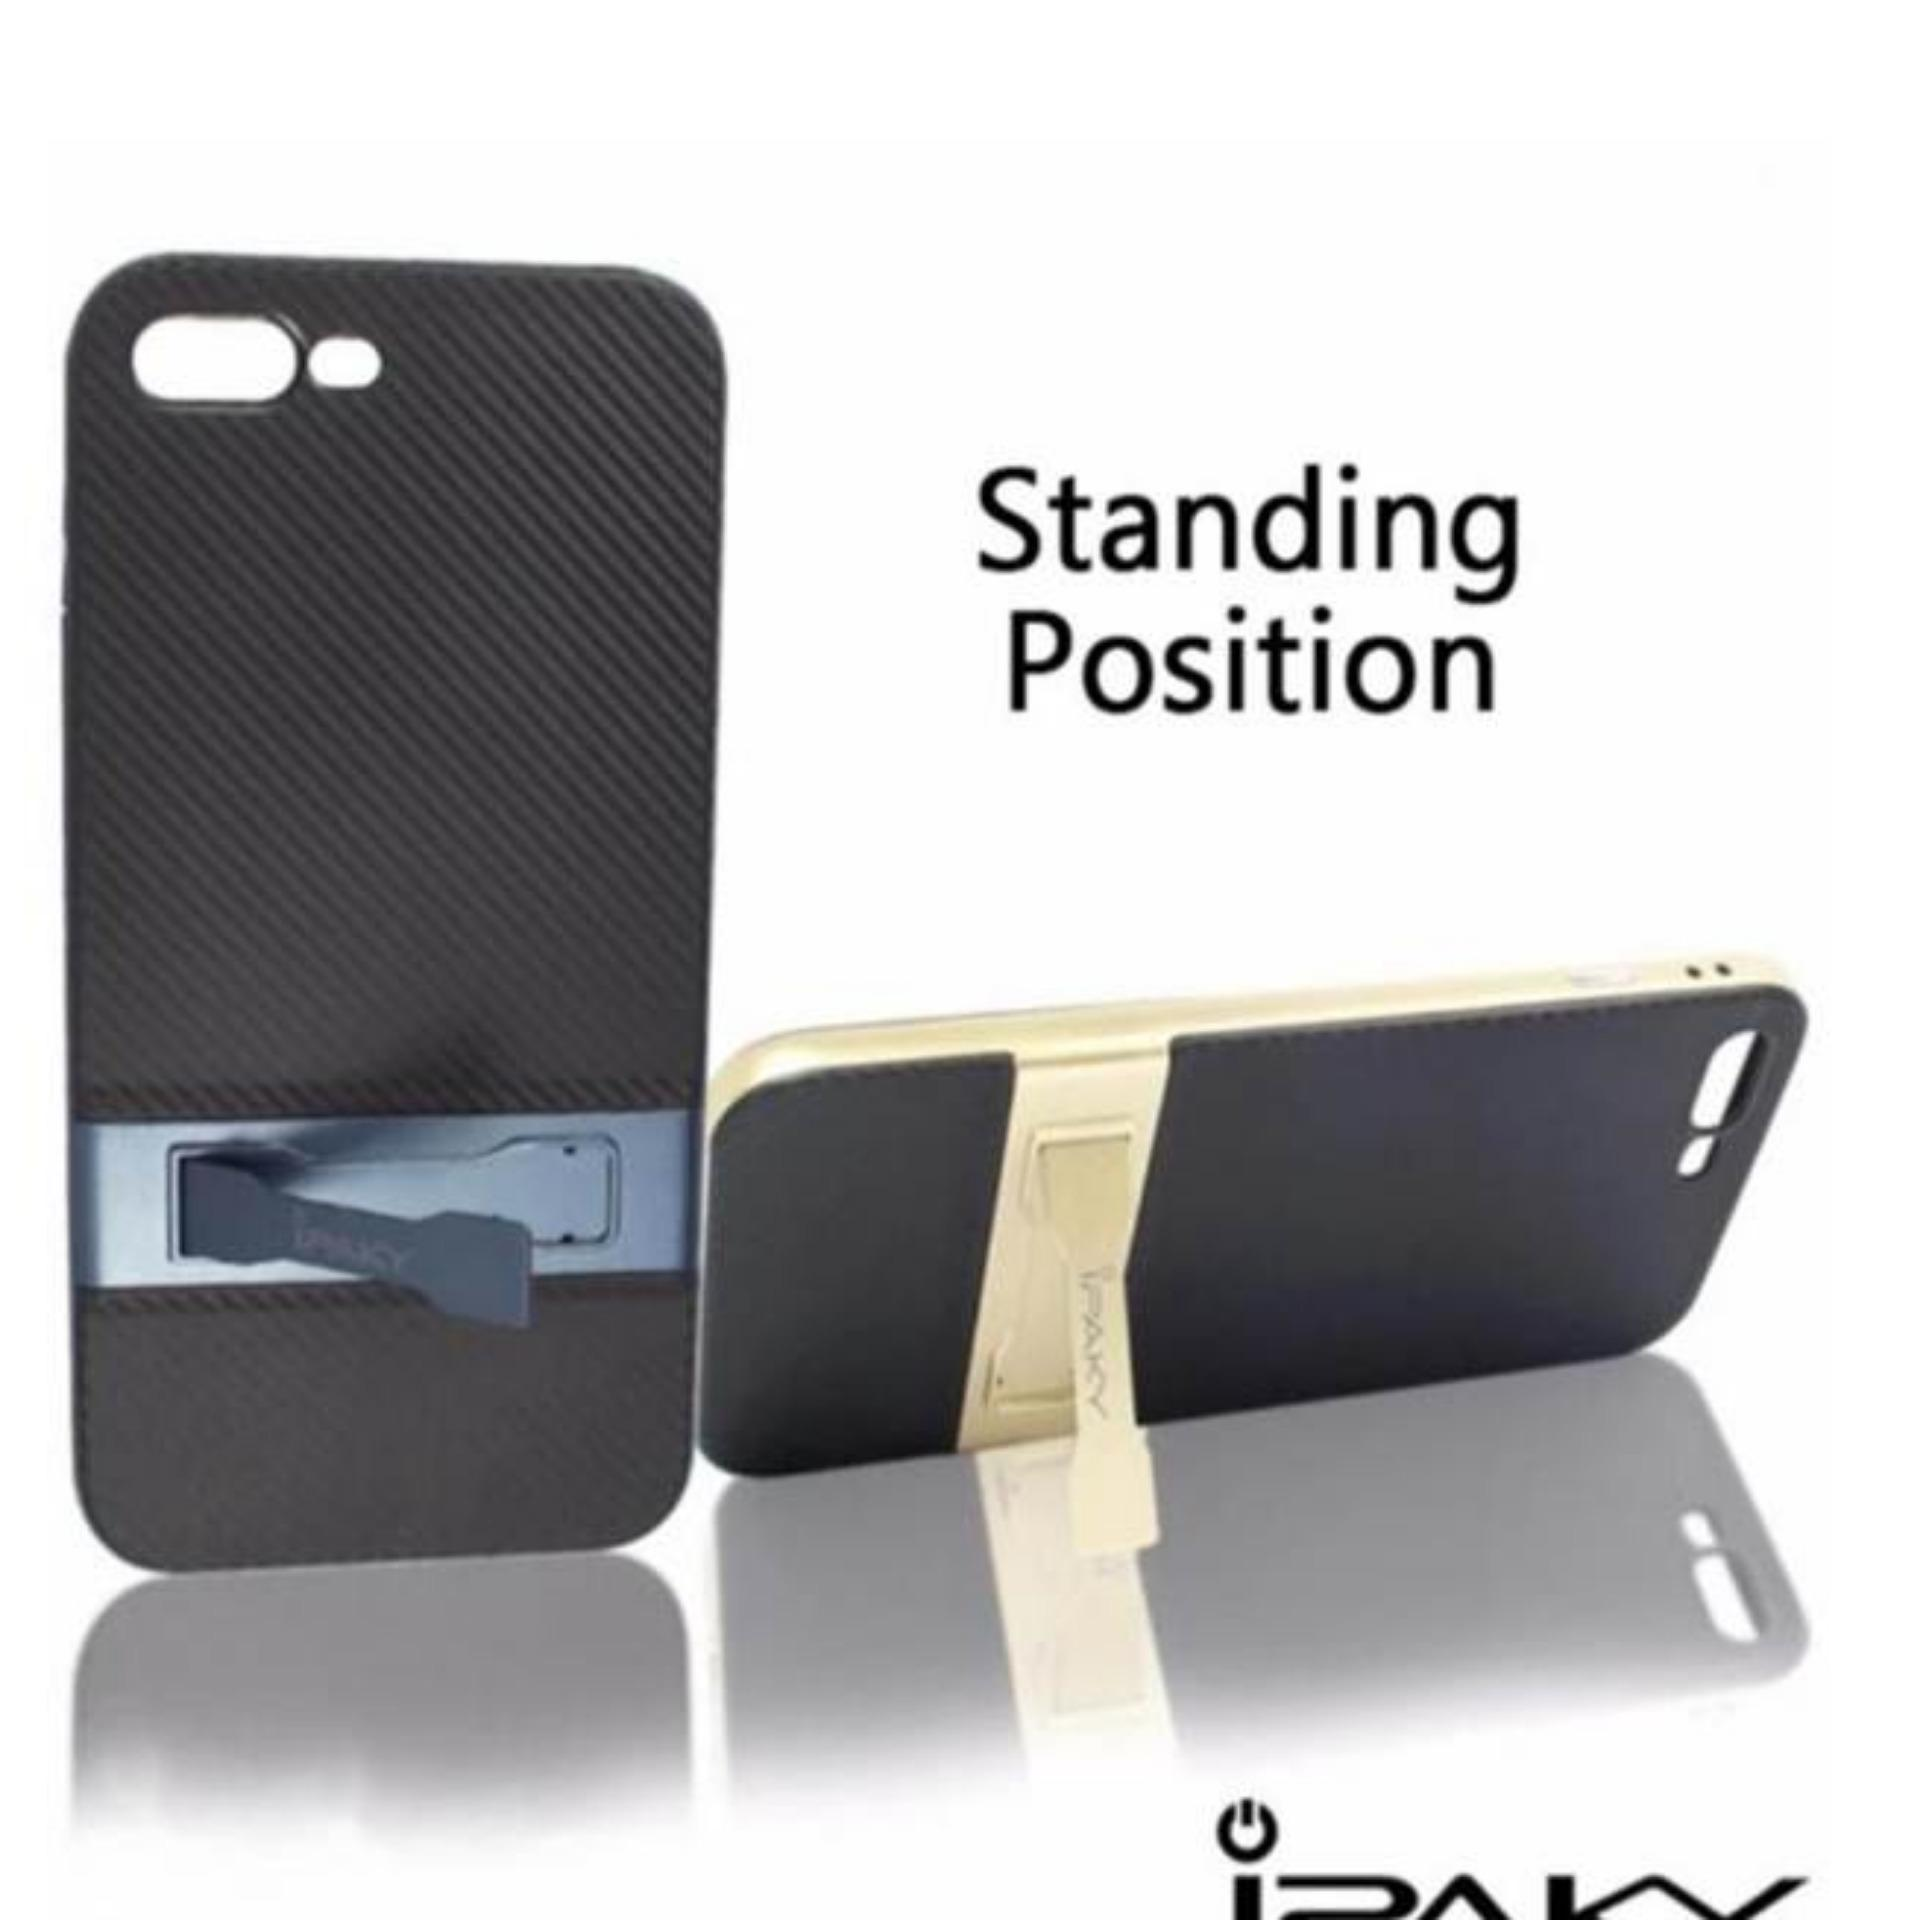 ... Case Ipaky Standing with Kick Stand Shockproof Dual Layer Back CaseCover for Samsung Galaxy A7 2017 ...